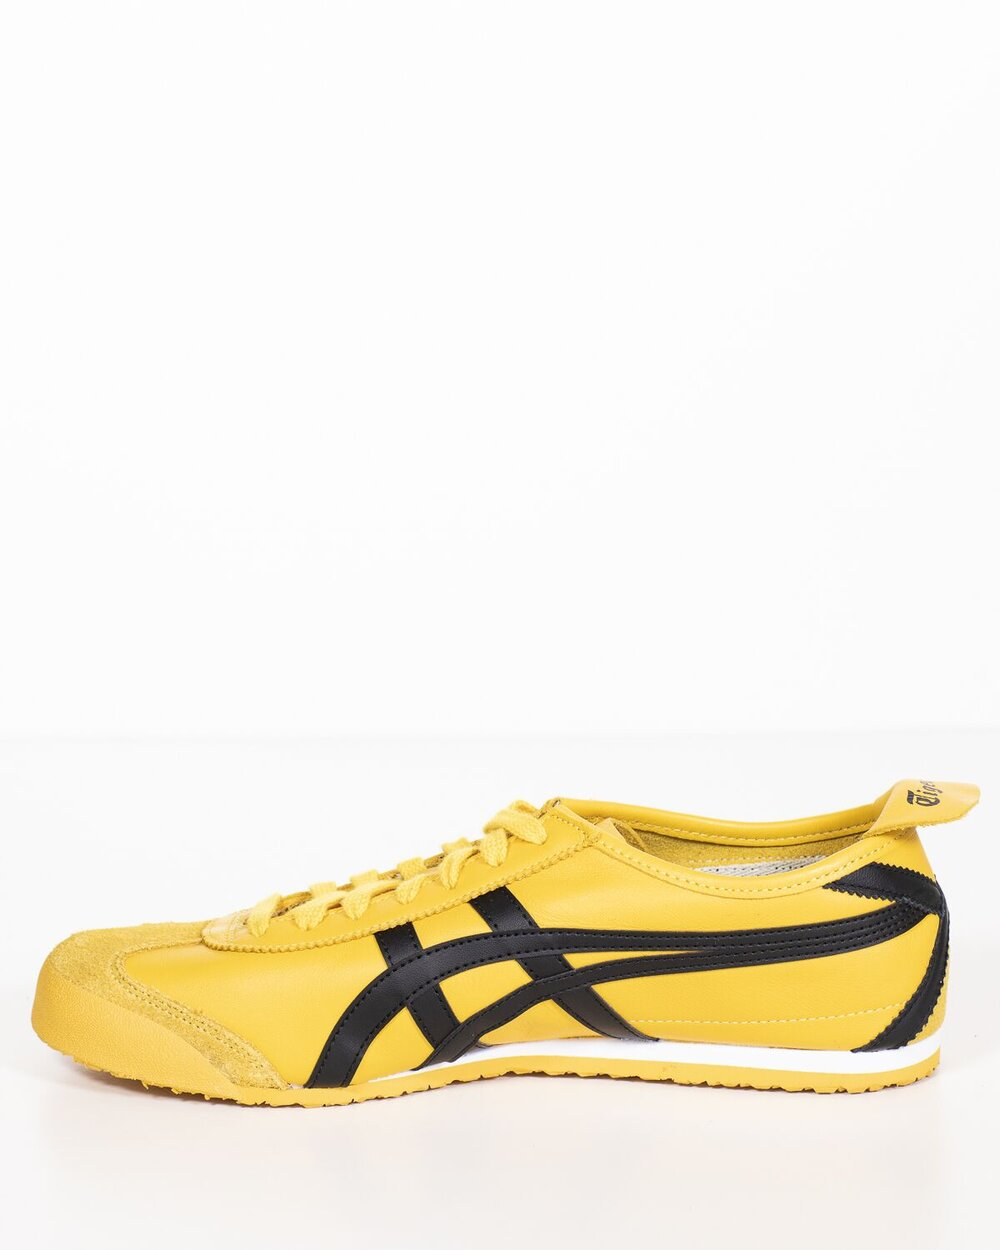 Onitsuka Tigers Mexico 66 Yellow/Black Leather